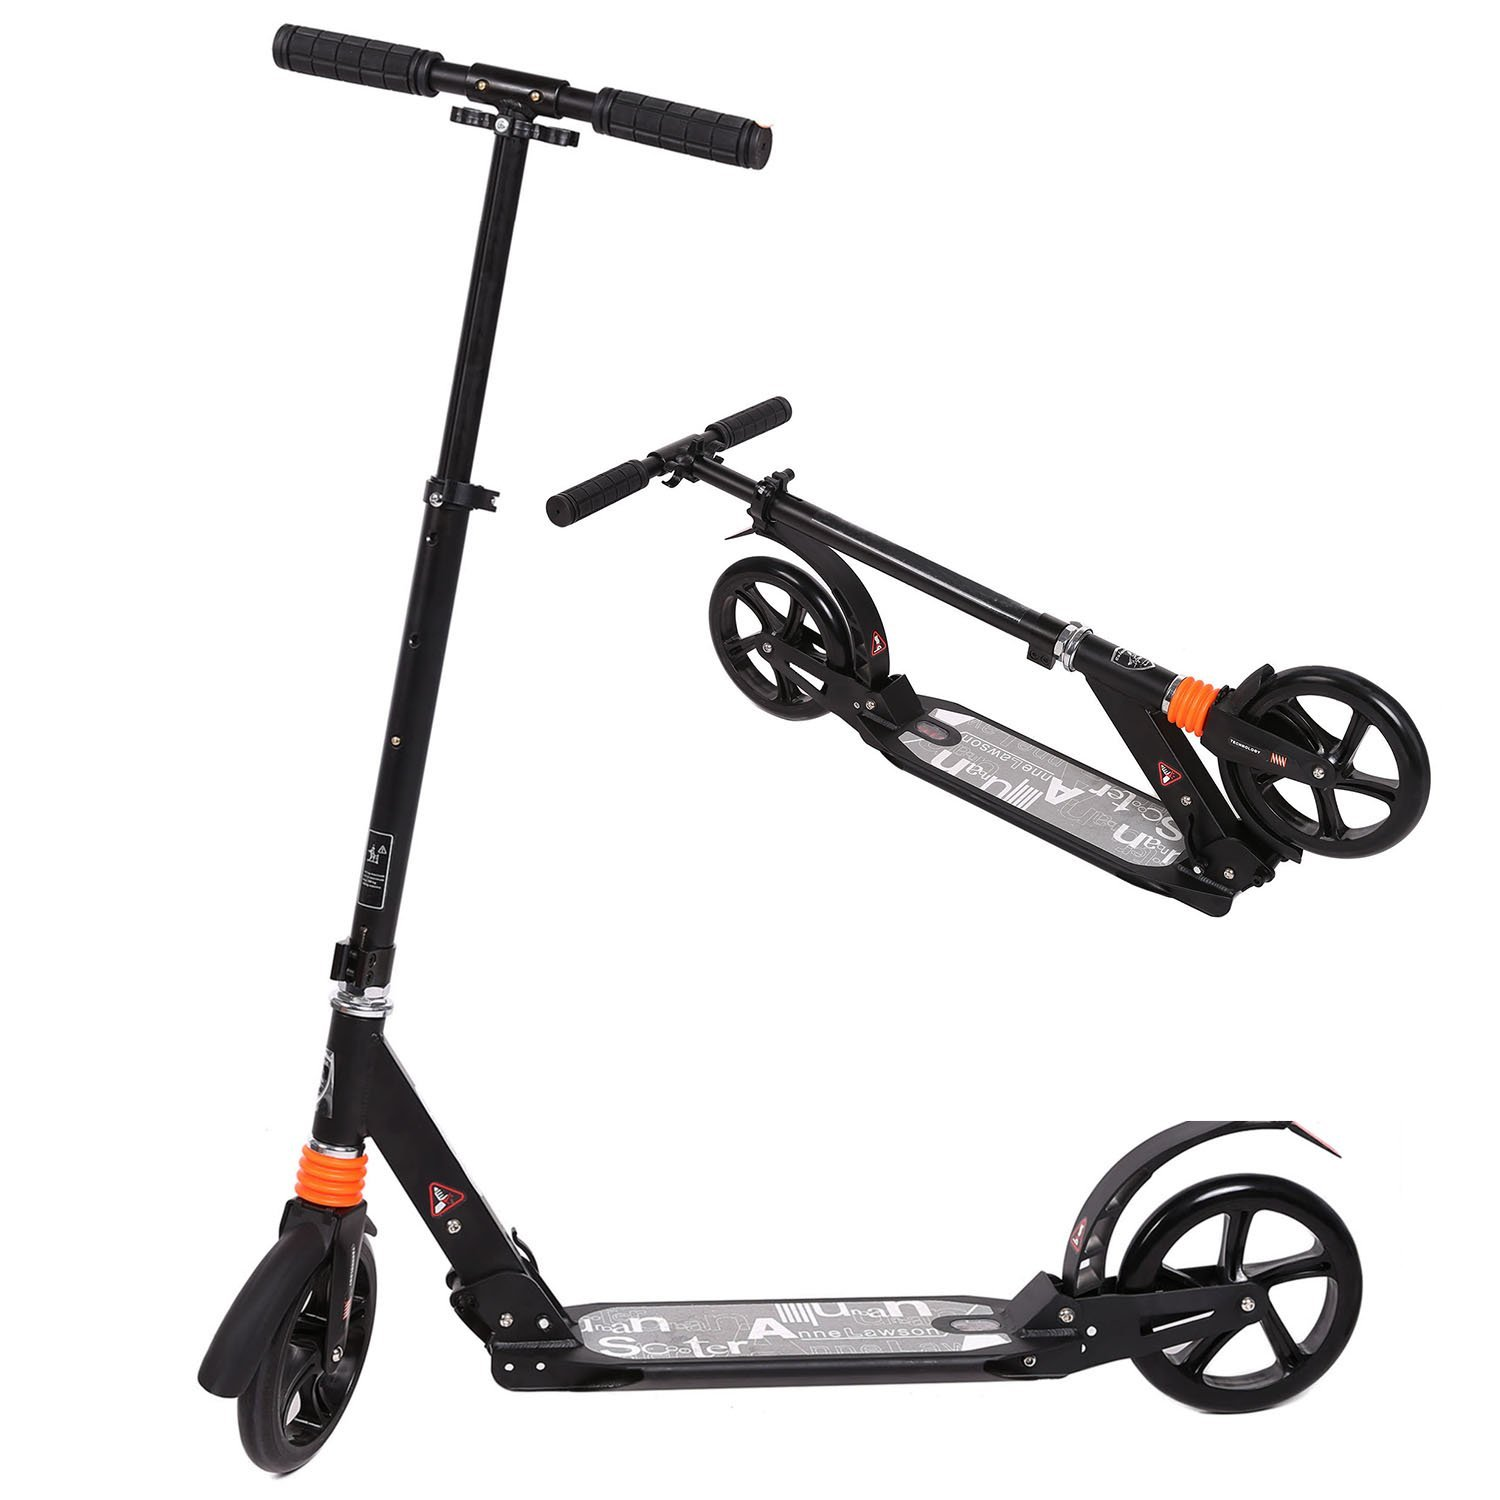 Adult push kick scooter